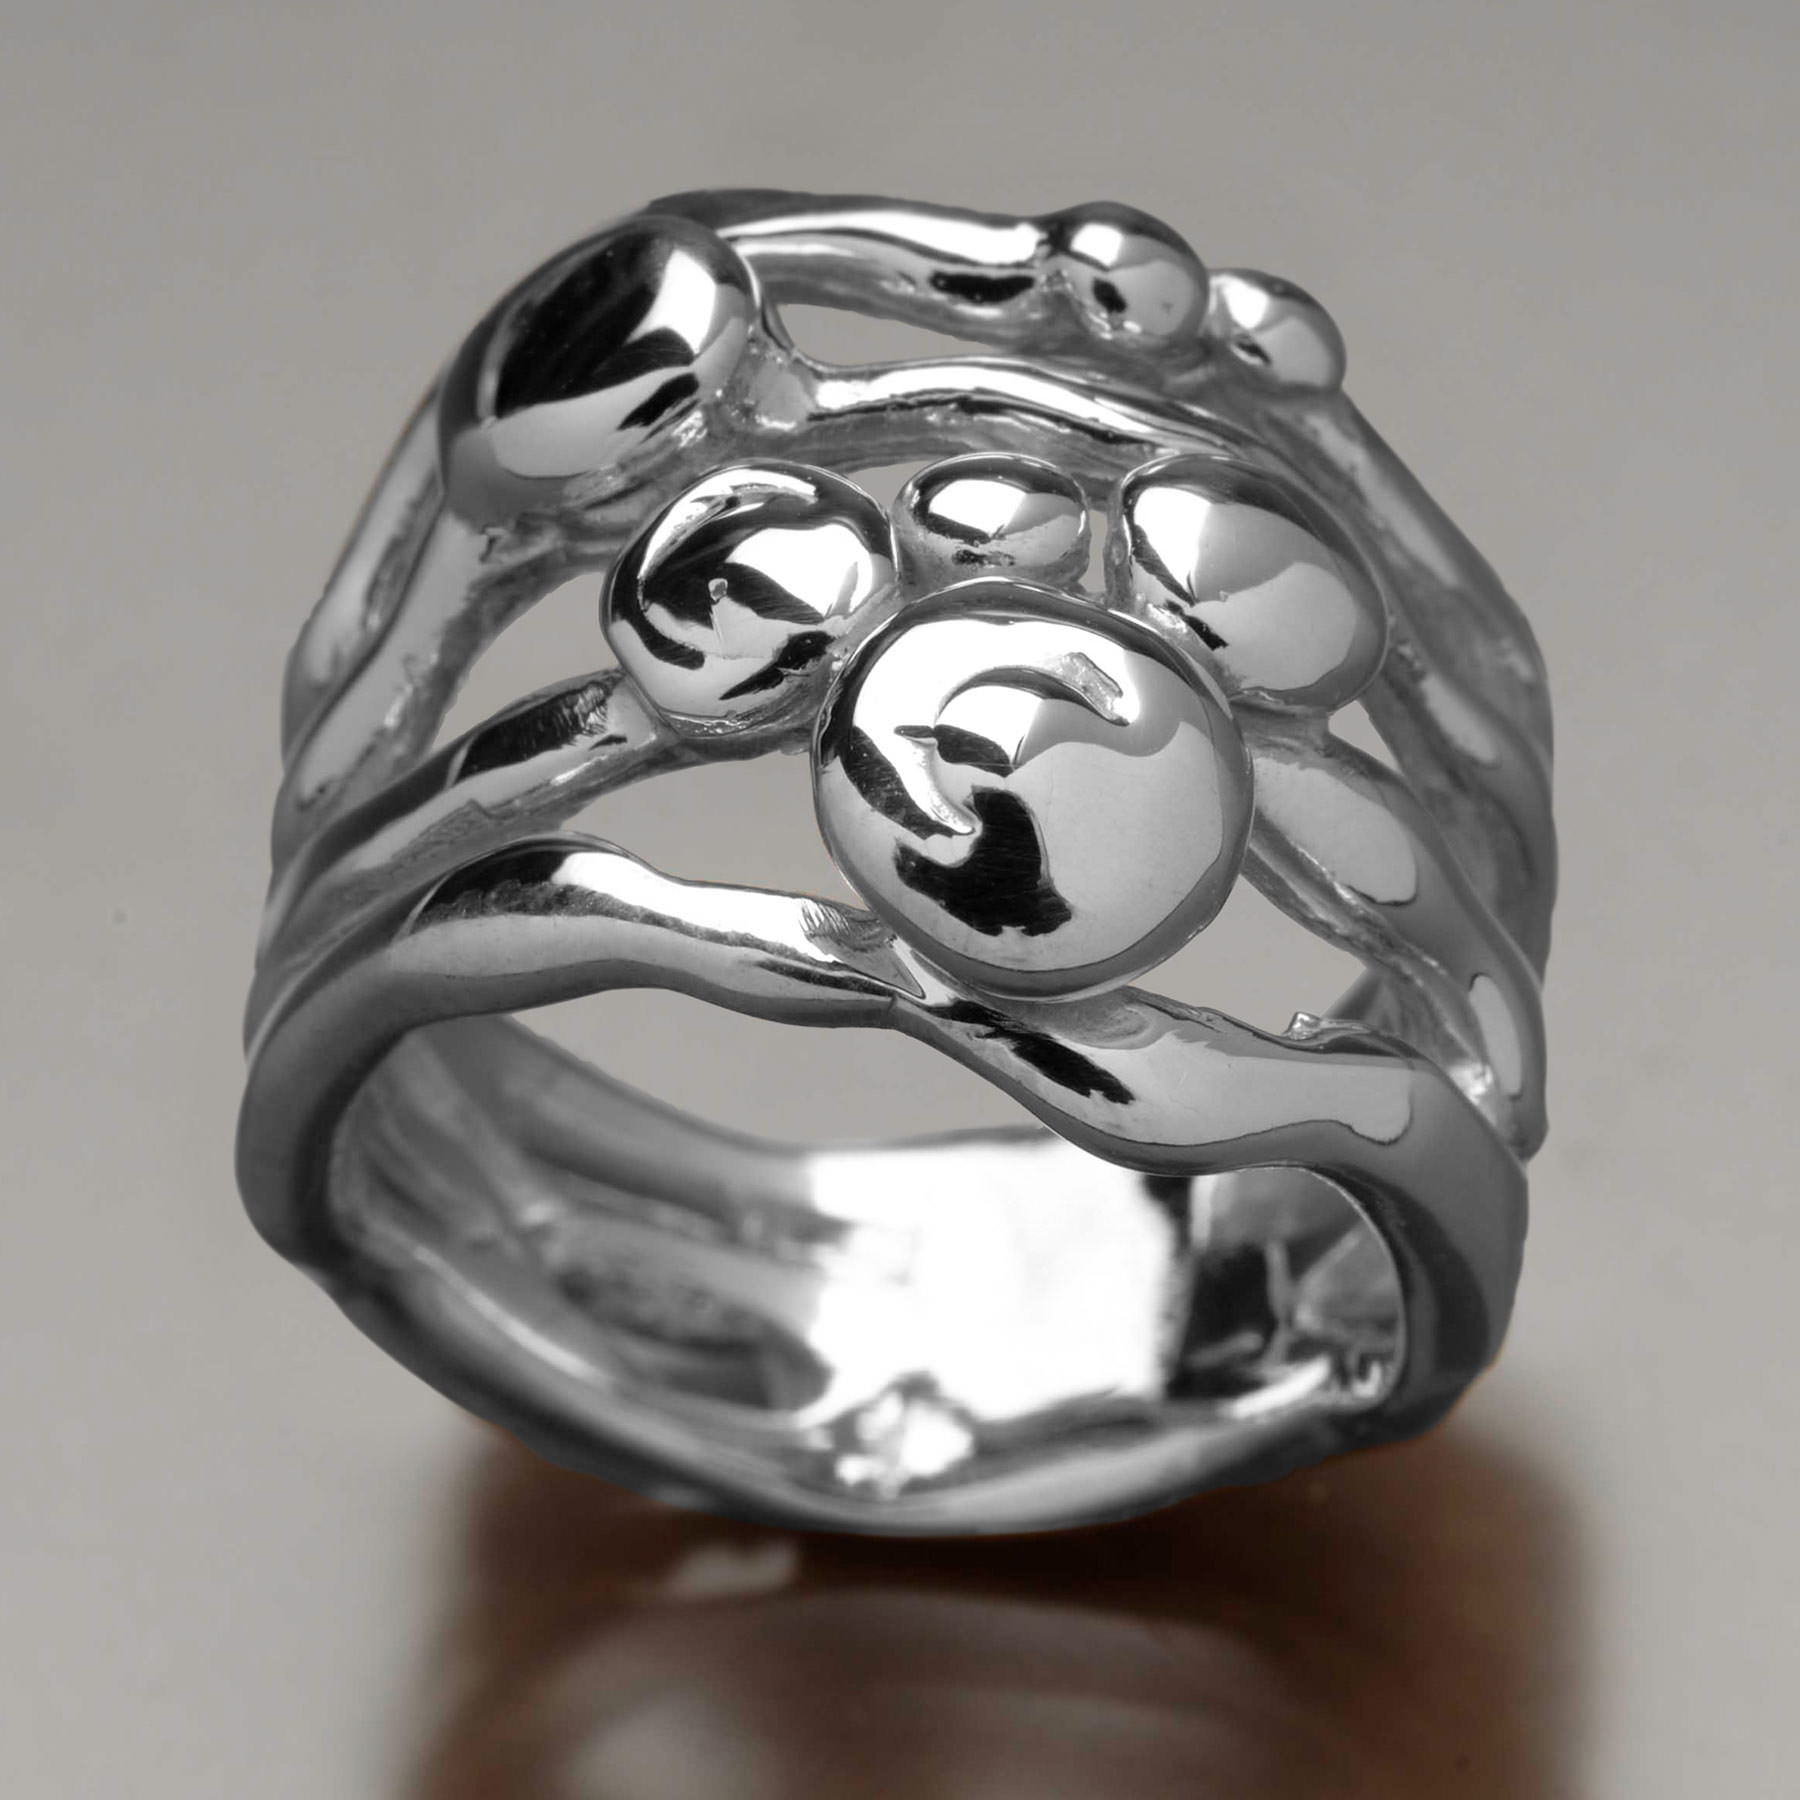 Sheila Corkery silver pebble ring; image via Sheila Corkery Jewelry